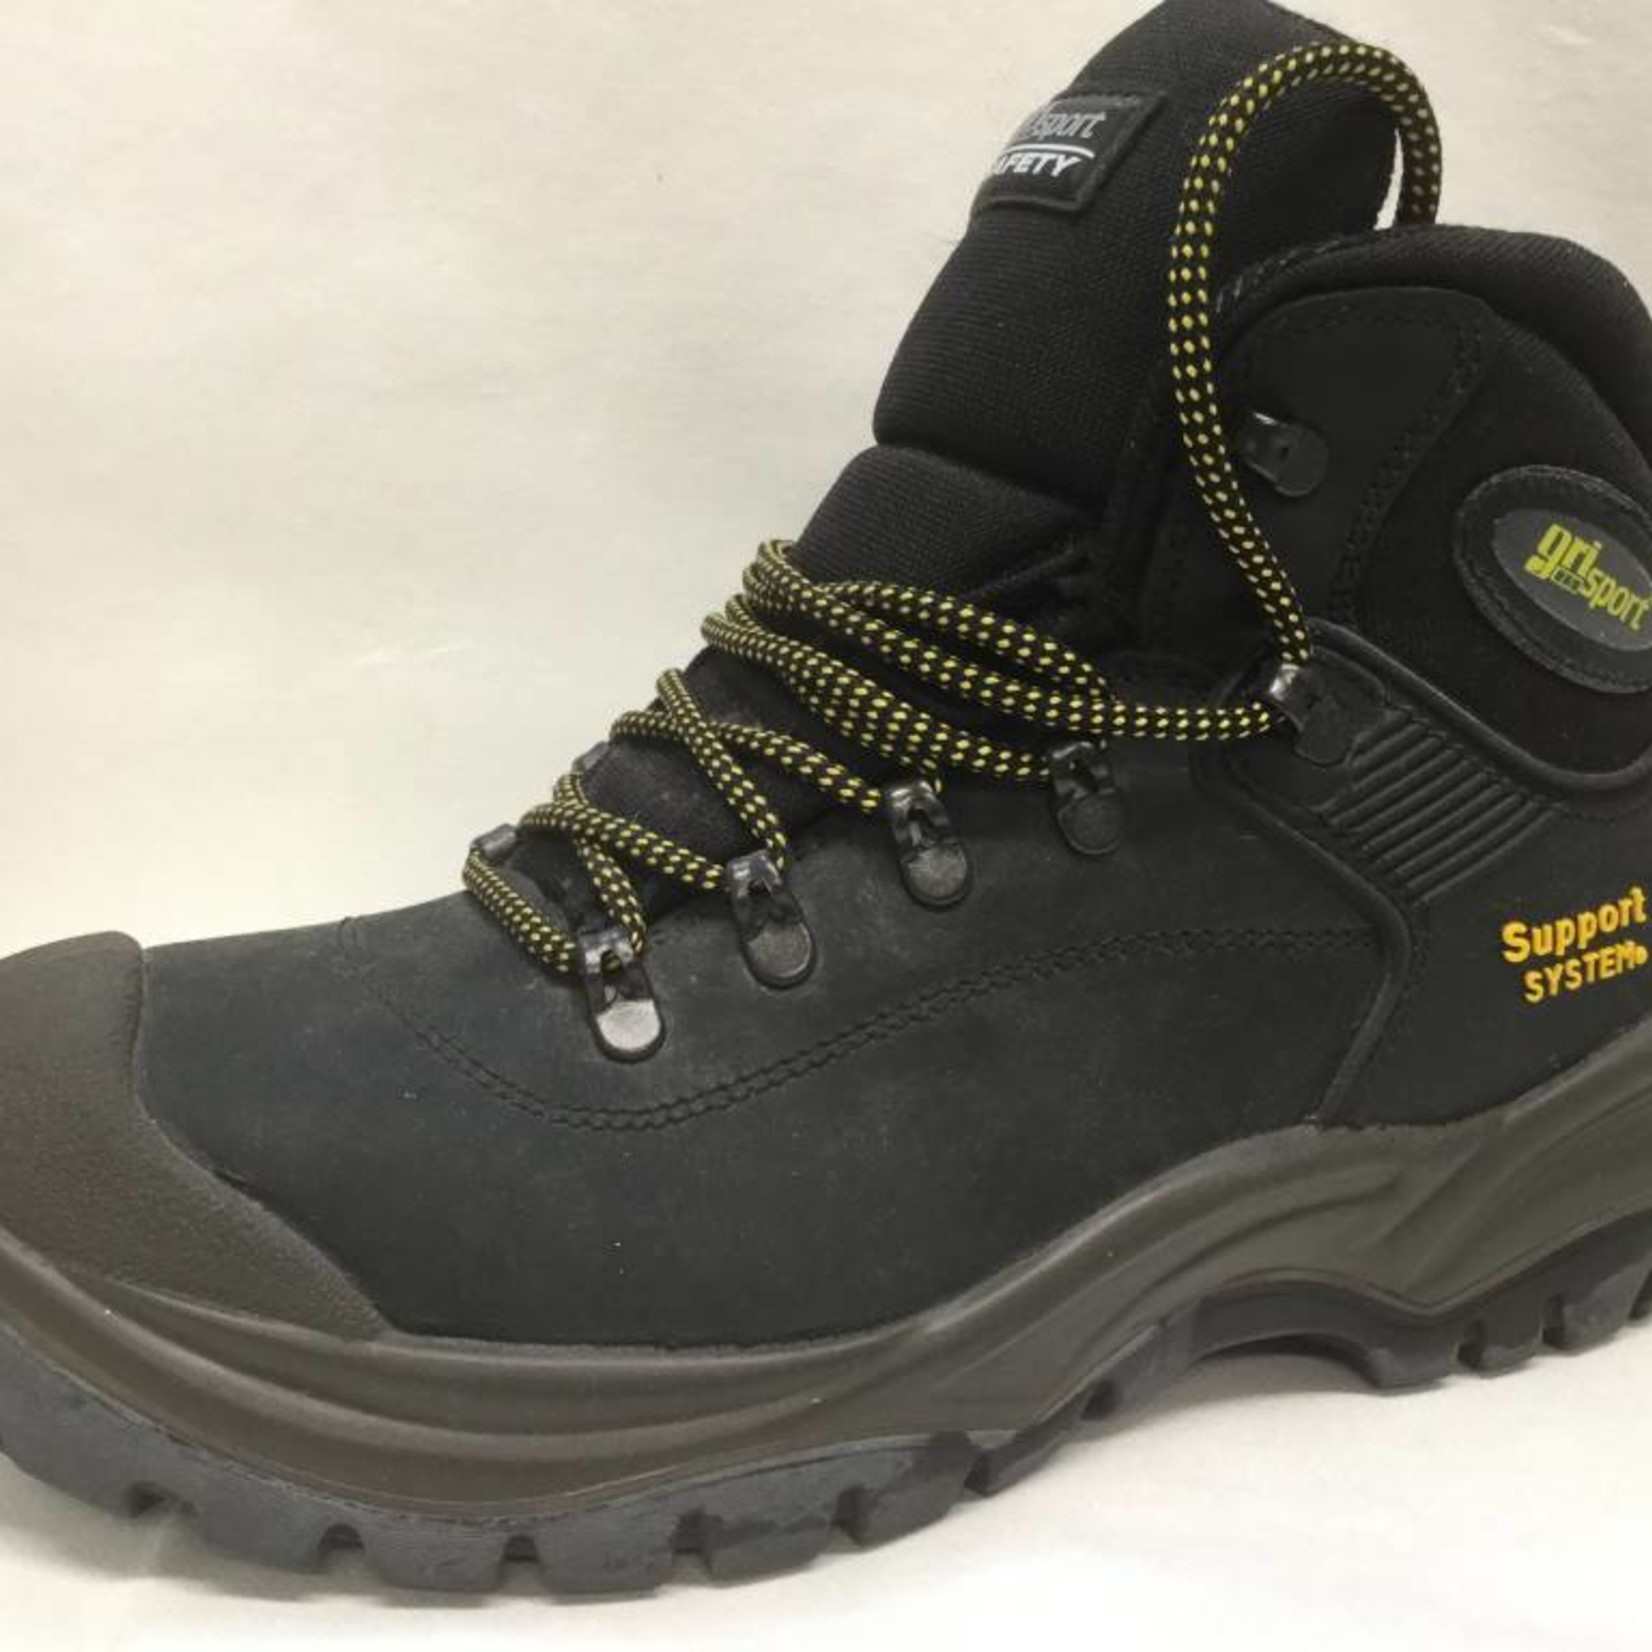 CONTRACTOR BOOT STEEL TOE TOECAP SAFETY BOOTS SIZE 47 (13) BLACK